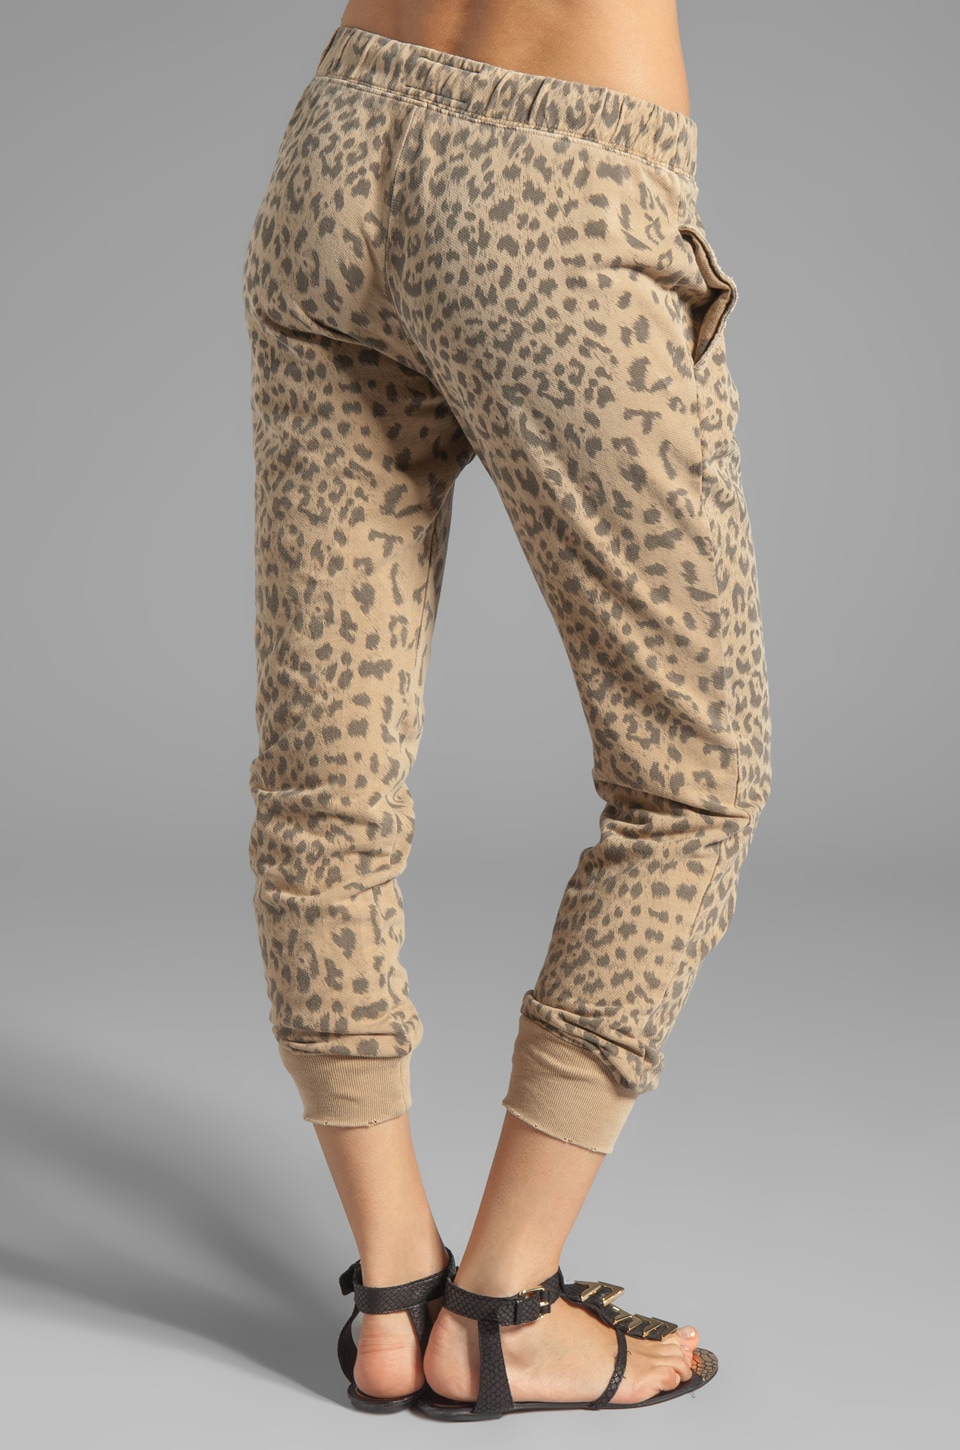 Current/Elliott Banded Bottom Sweat Pant in Camel Leopard